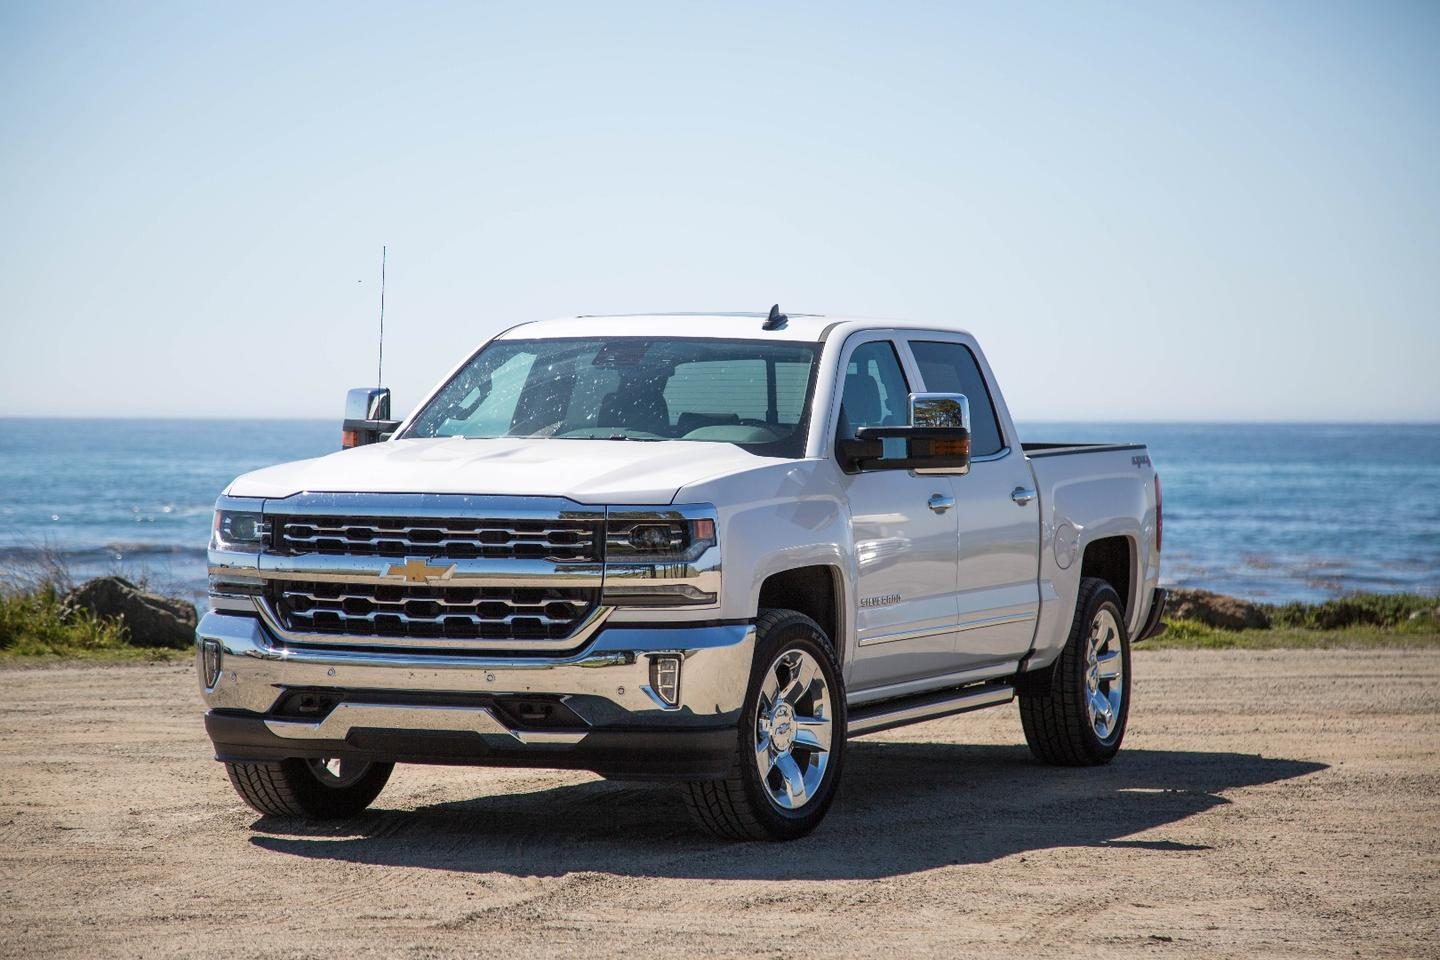 The Chevrolet Silverado 1500LTZ, complete with bug-spattered windscreen, on California's Route 1